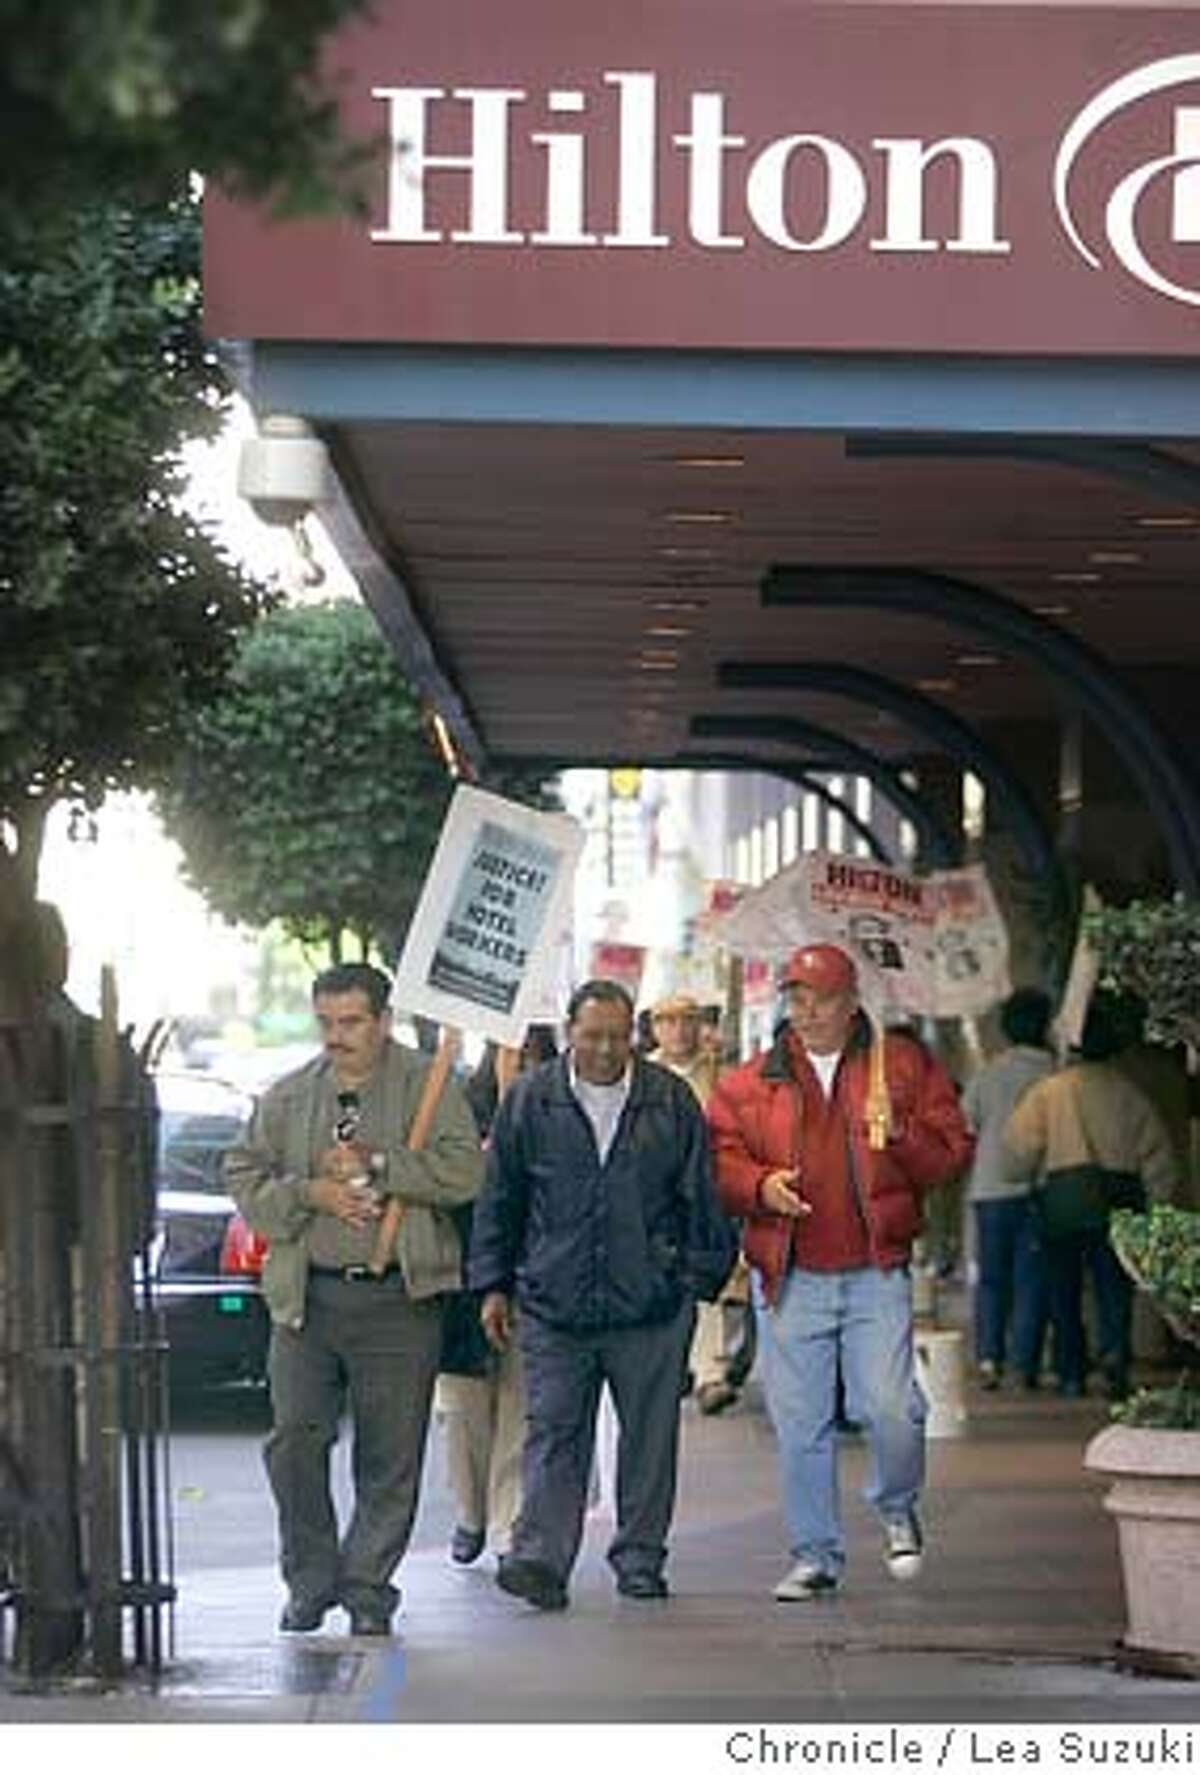 hotels005_ls.jpg From left: Jose Martinez, Lazaro Via Lobos and Mario Martinez walk in front of the Hilton Hotel on O'Farrell. Hilton Hotels is suggesting to an anthropology convention to move its November gathering to a (non-union) Atlanta Hilton location for some sort of compensation if the group wants to avoid potential inconveniences created by the lock-out. We're looking for photos of locked out picketers in front of the Hilton. (WOULD ESPECIALLY LIKE TO SEE THAT THE LOCATION IS THE HILTON SINCE THAT IS A CENTRAL FOCUS OF THE STORY). City:� SF, CA Location:� Hilton Hotel O'Farrell betw Taylor and Mason Photo taken on 10/25/04 in San Francisco, CA. Lea Suzuki/ San Francisco Chronicle MANDATORY CREDIT FOR PHOTOG AND SF CHRONICLE/ -MAGS OUT Business#Business#Chronicle#10/26/2004#ALL#5star##0422431863